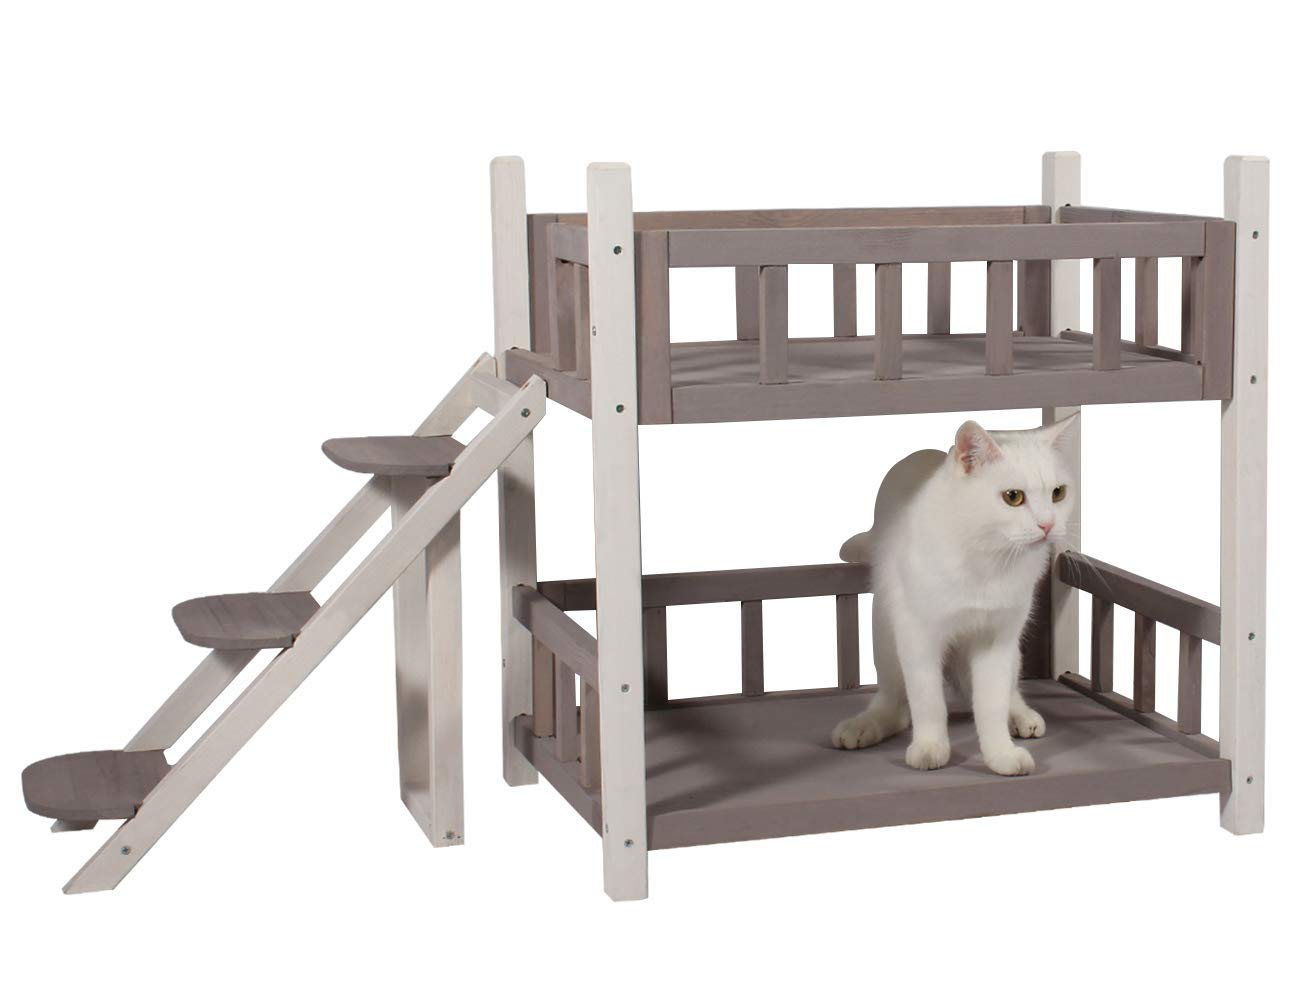 ROCKEVER Wooden Pet Bunk Bed Indoor,Dog Bed Small for Two Pets Grey by ROCKEVER